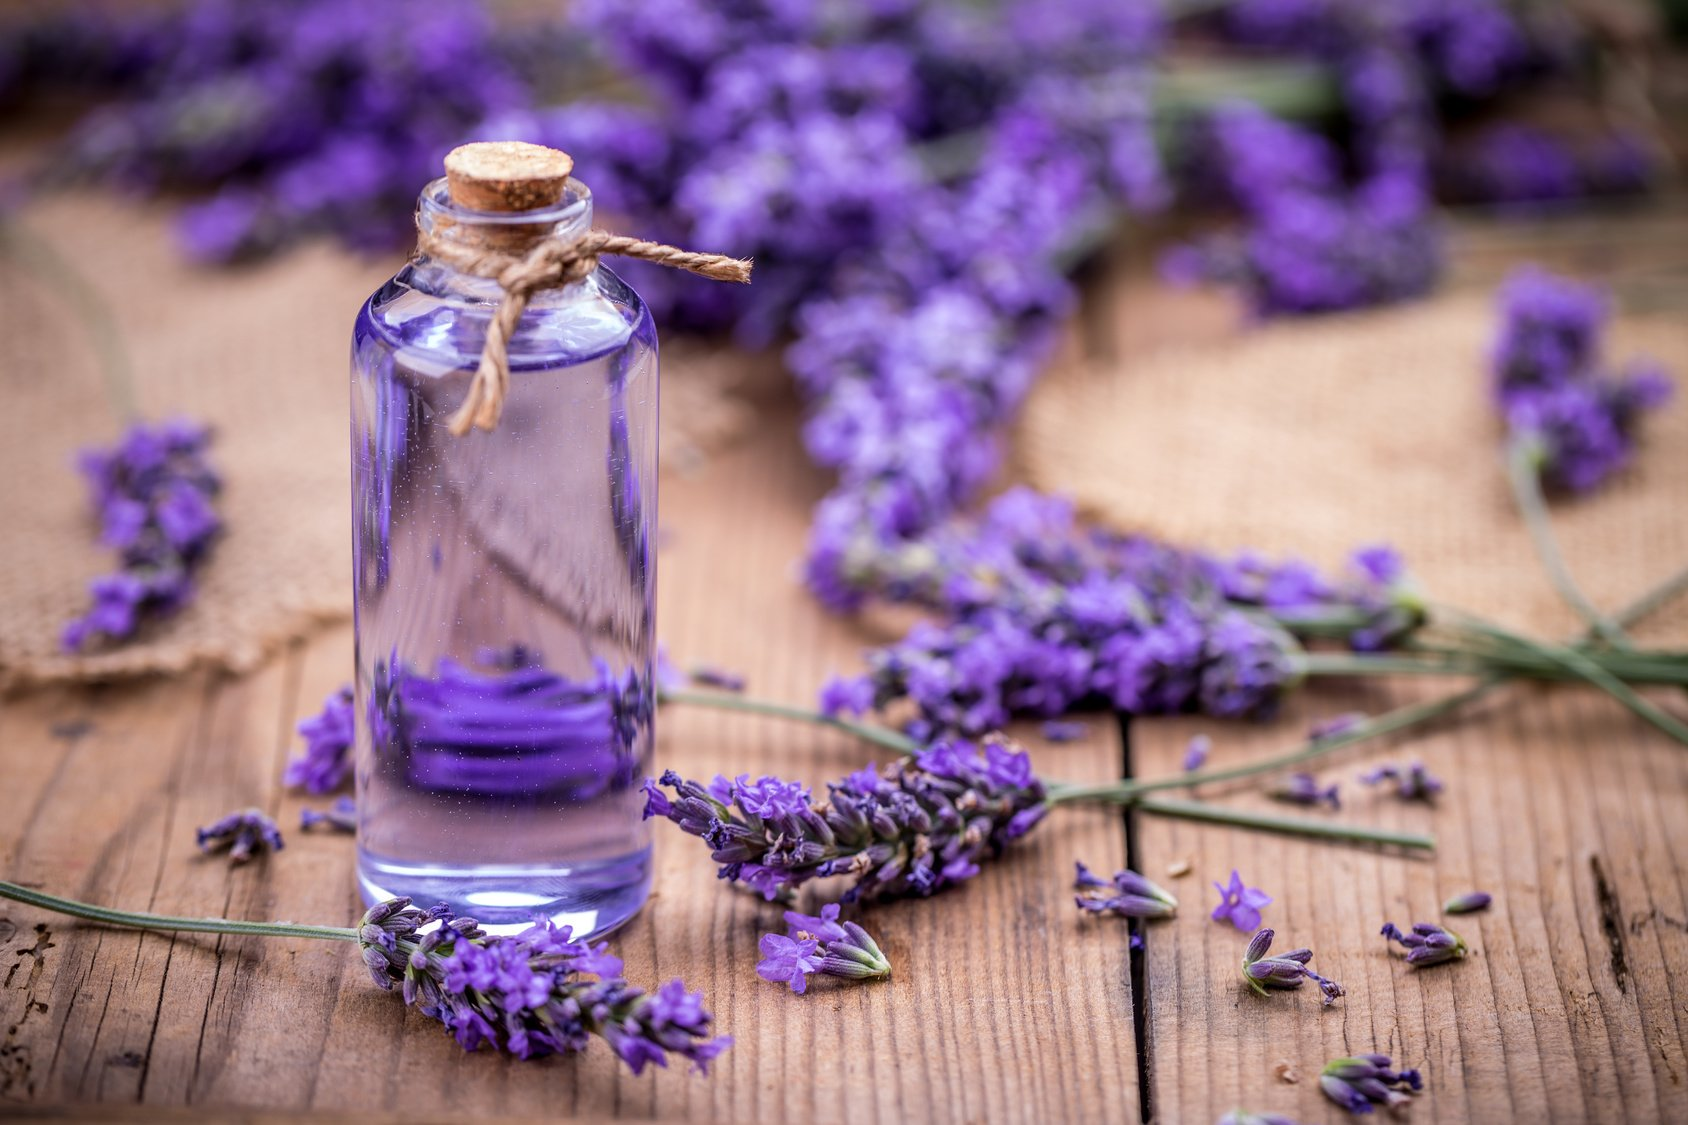 Lavender Essential Oil - Distilled on premises from freshly-cut lavender in order to capture the full complexity and quality of the Lavender's essential oils. Available at the end of July.